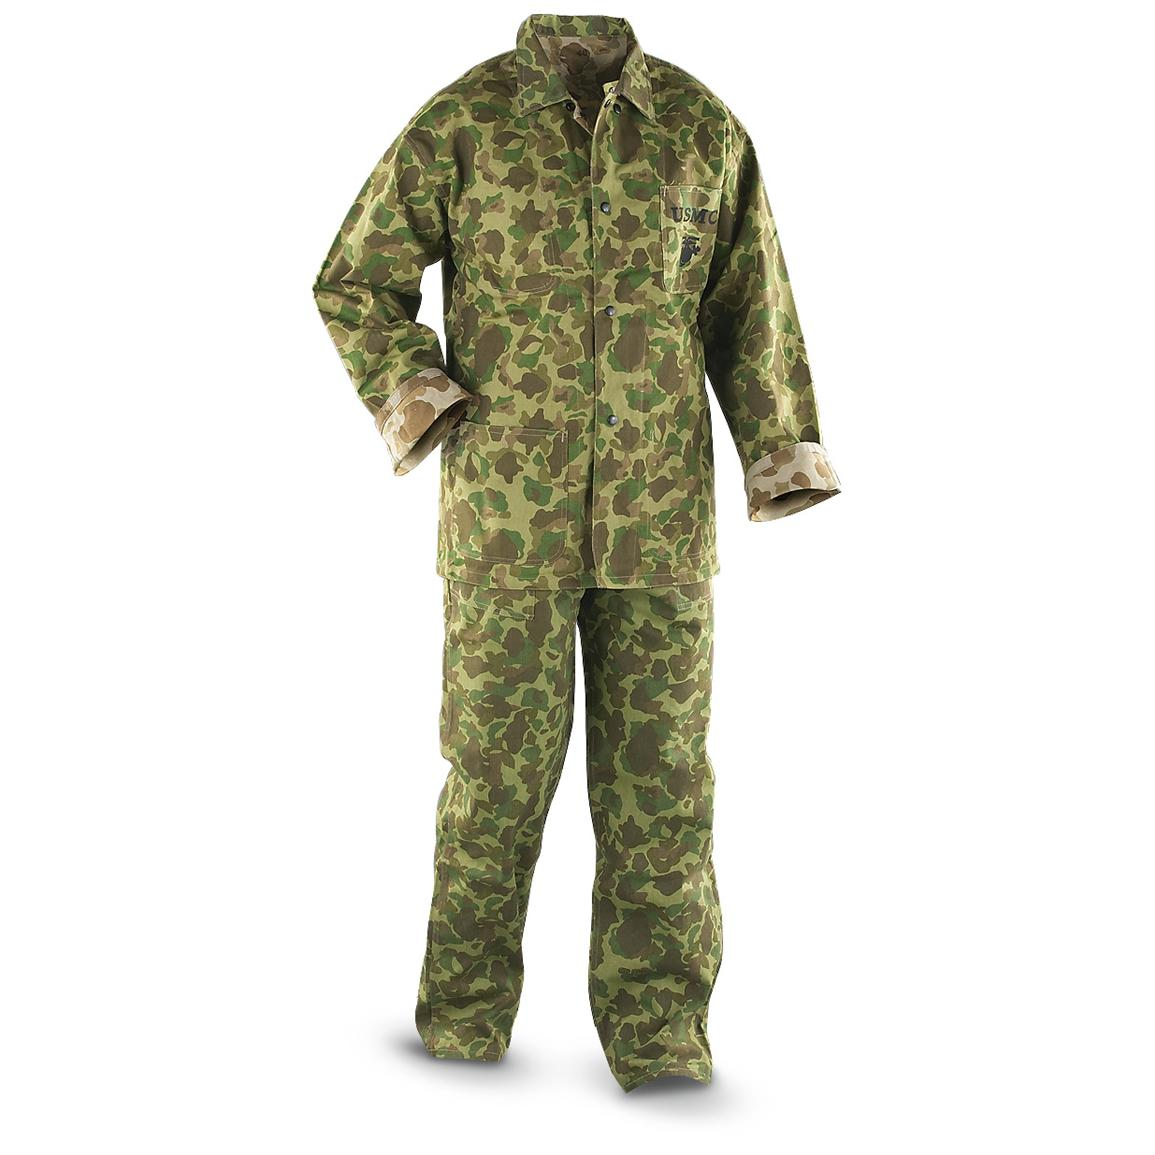 Reproduction USMC Military Surplus WWII Jungle Fatigue Top and Bottom, Reversible Jungle Camo